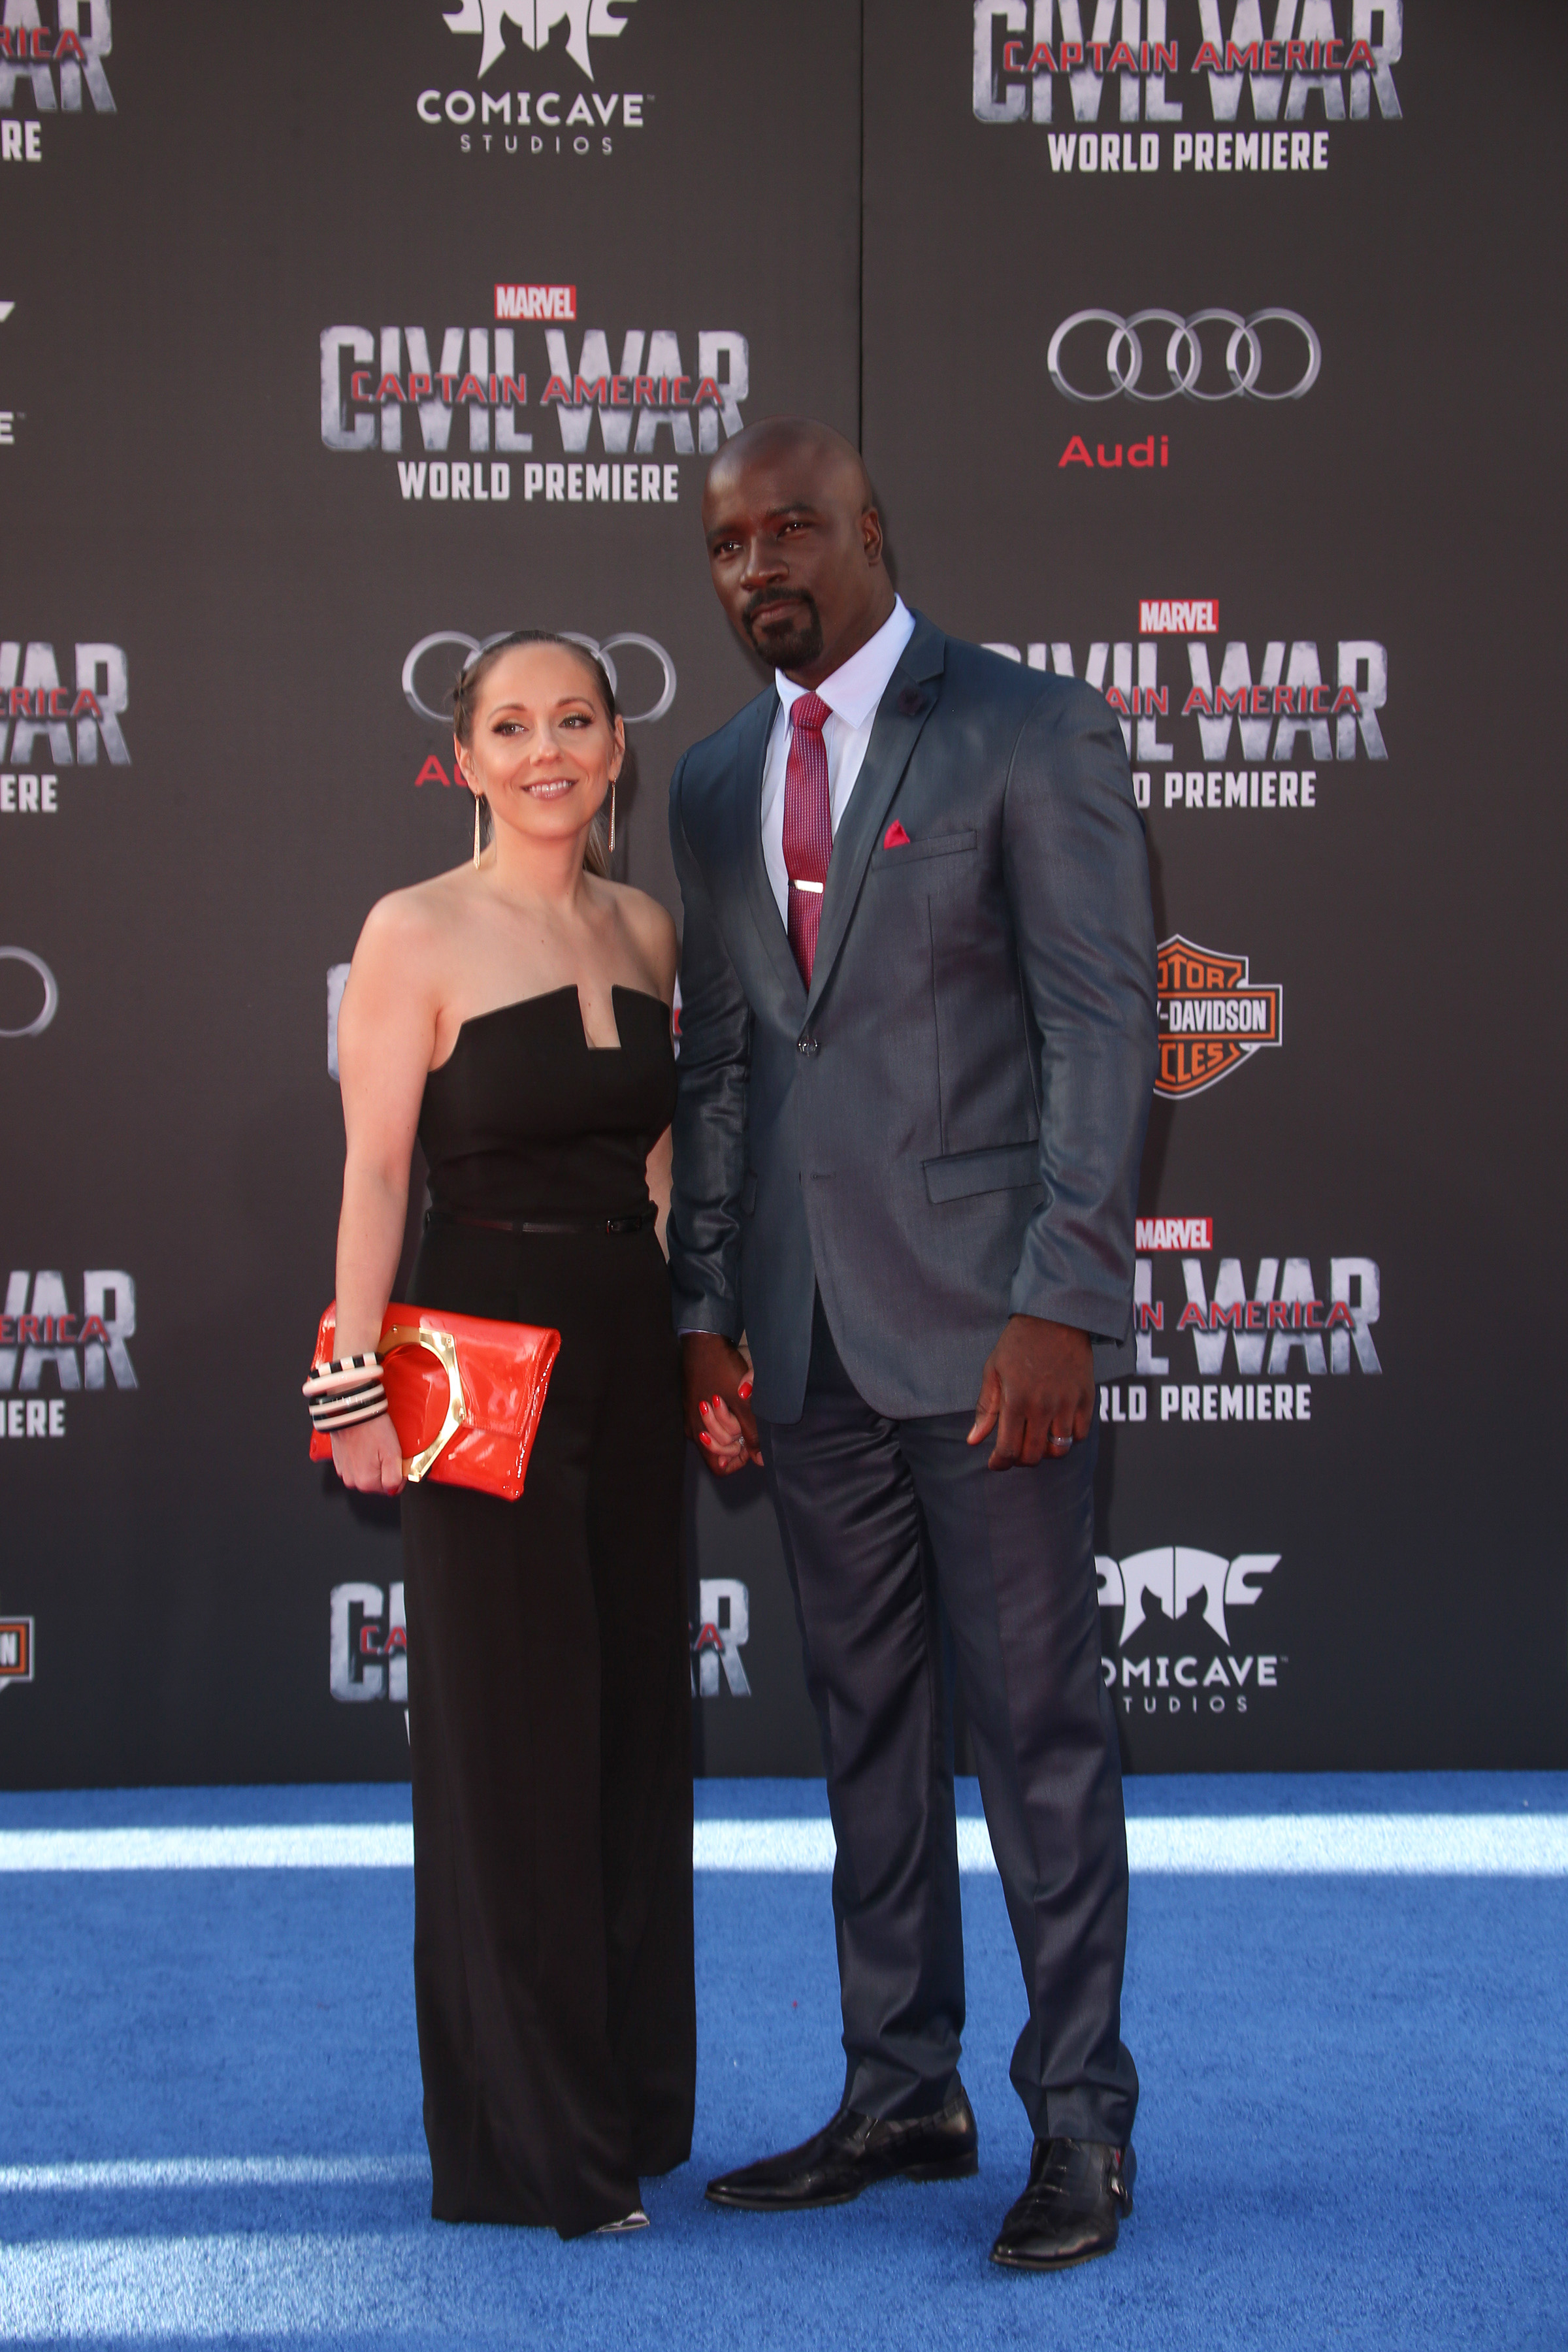 "04/12/2016 - Iva Colter, Mike Colter - ""Captain America: Civil War"" World Premiere - Arrivals - Dolby Theatre, 6801 Hollywood Boulevard - Hollywood, CA, USA - Keywords: Vertical, Portrait, Photography, Action, marvel cinematic universe, Adventure, Sci-Fi, Avengers, Iron Man, Sequel, Portrait, Photography, Film Industry, Movie Premiere, Arts Culture and Entertainment, Attending, Celebrities, Celebrity, Person, People, Los Angeles, California Orientation: Portrait Face Count: 1 - False - Photo Credit: PRPhotos.com - Contact (1-866-551-7827) - Portrait Face Count: 1"